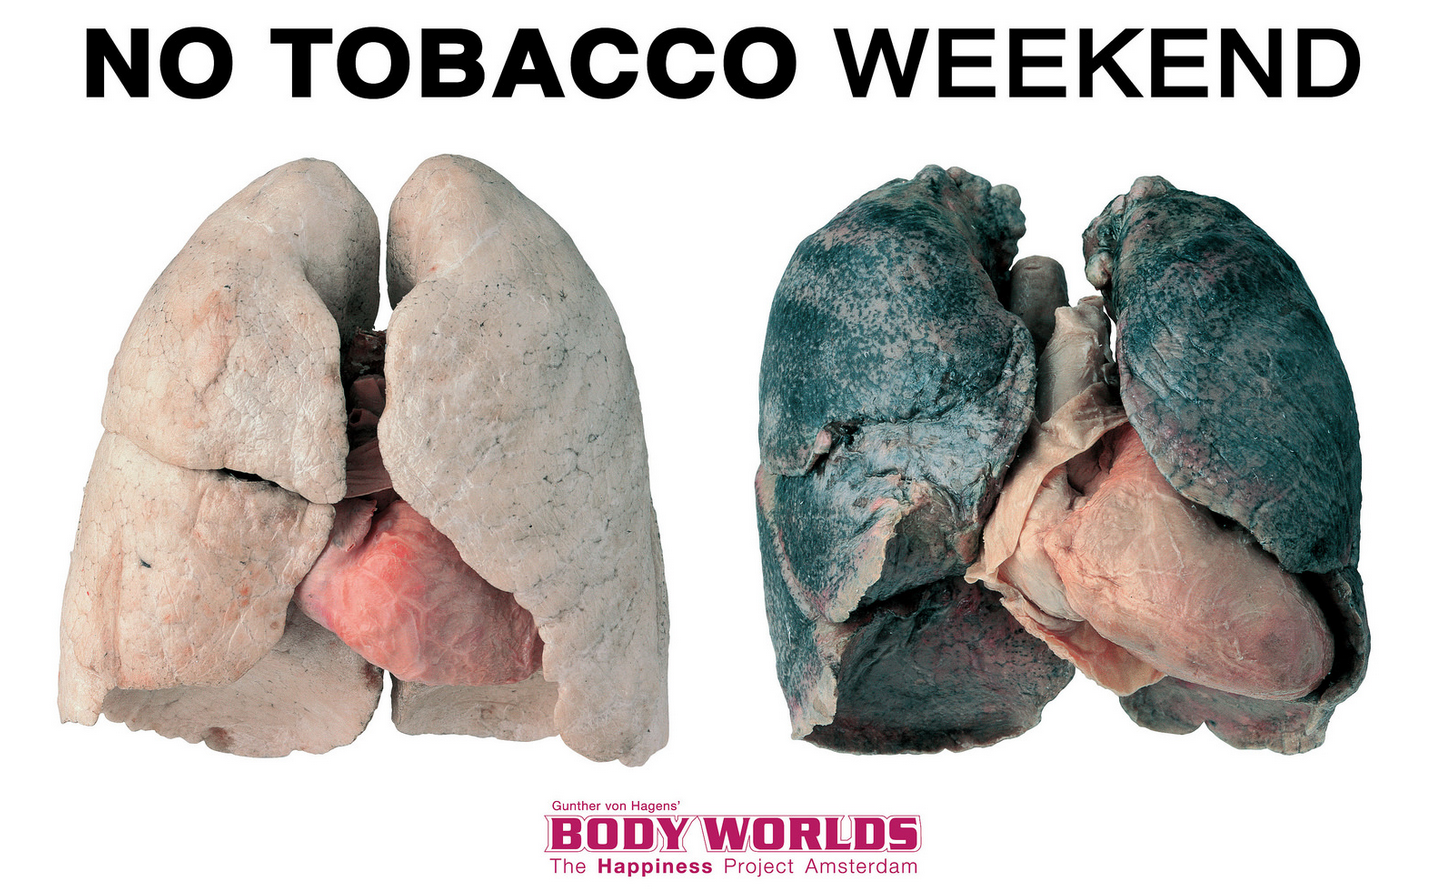 No tobacco weekend